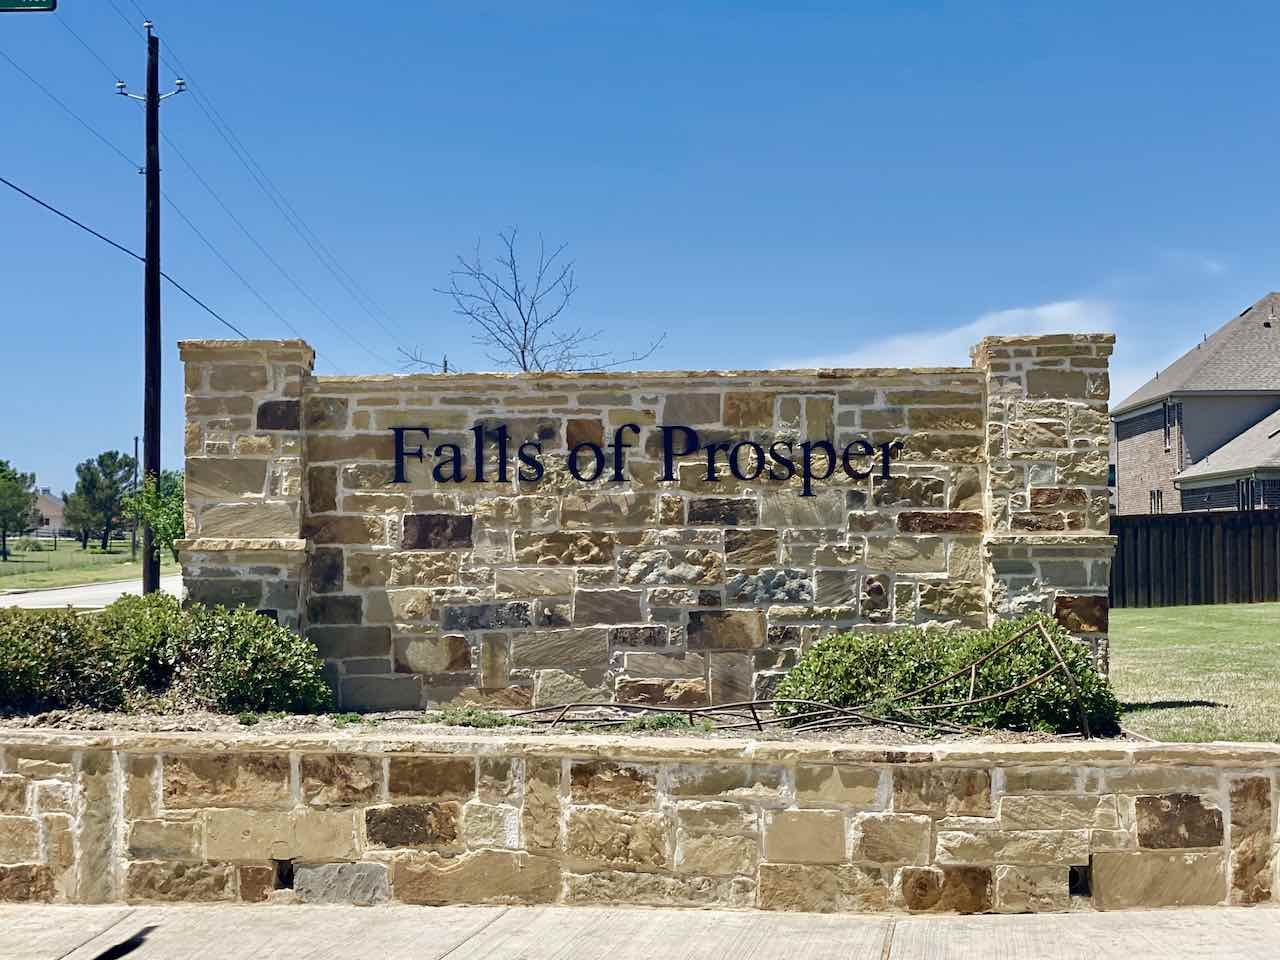 Falls of prosper in prosper tx